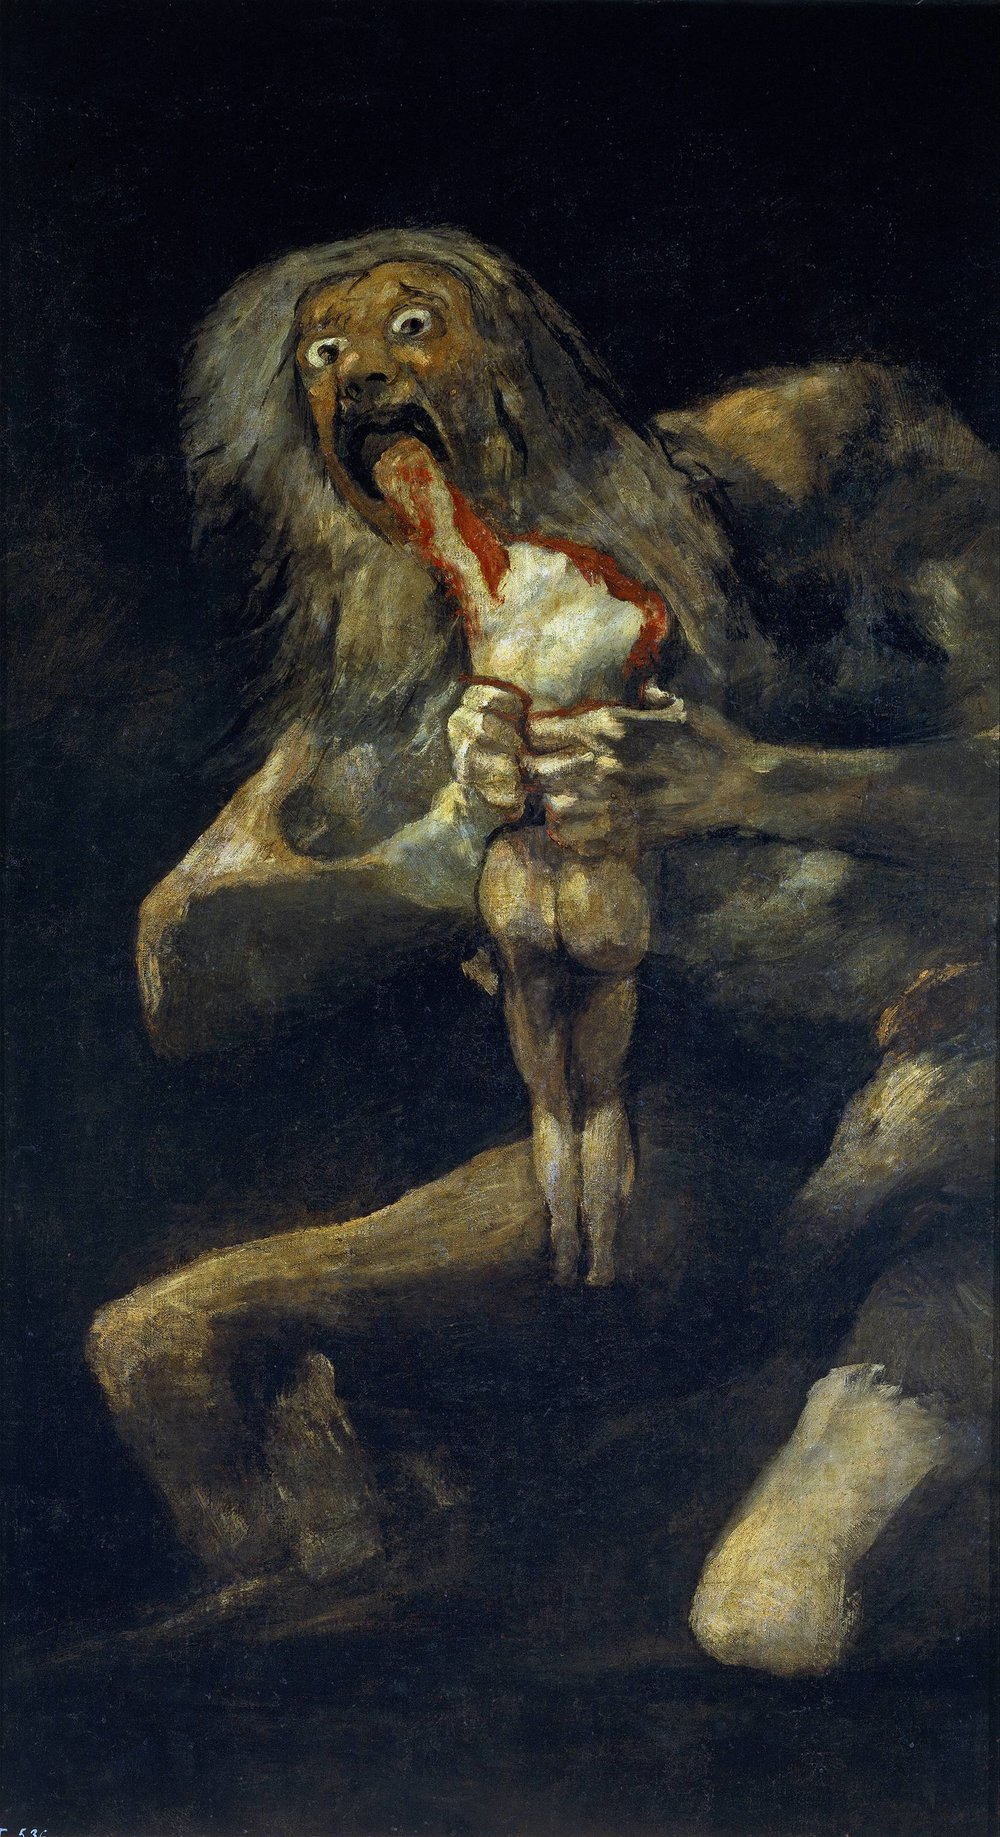 Francisco Goya, Saturn Devouring His Son (1819-1823)